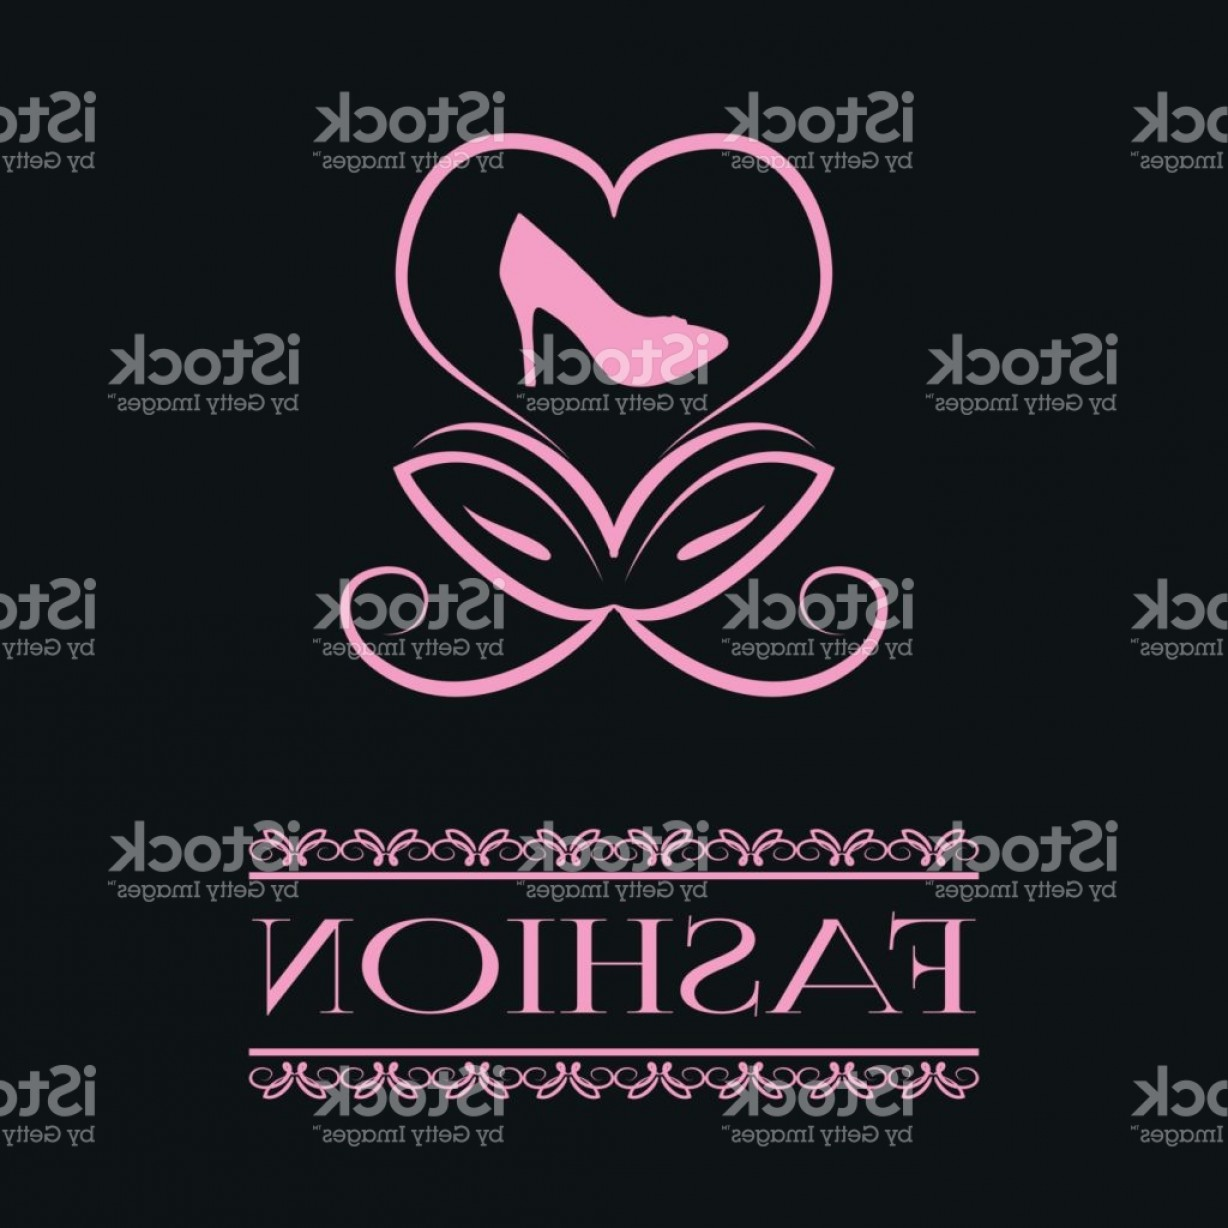 Silhouette Hee High Vector Lsitleetios: Postcard Poster Abstract Flower Bud In The Form Of A Heart And The Silhouette Of Gm